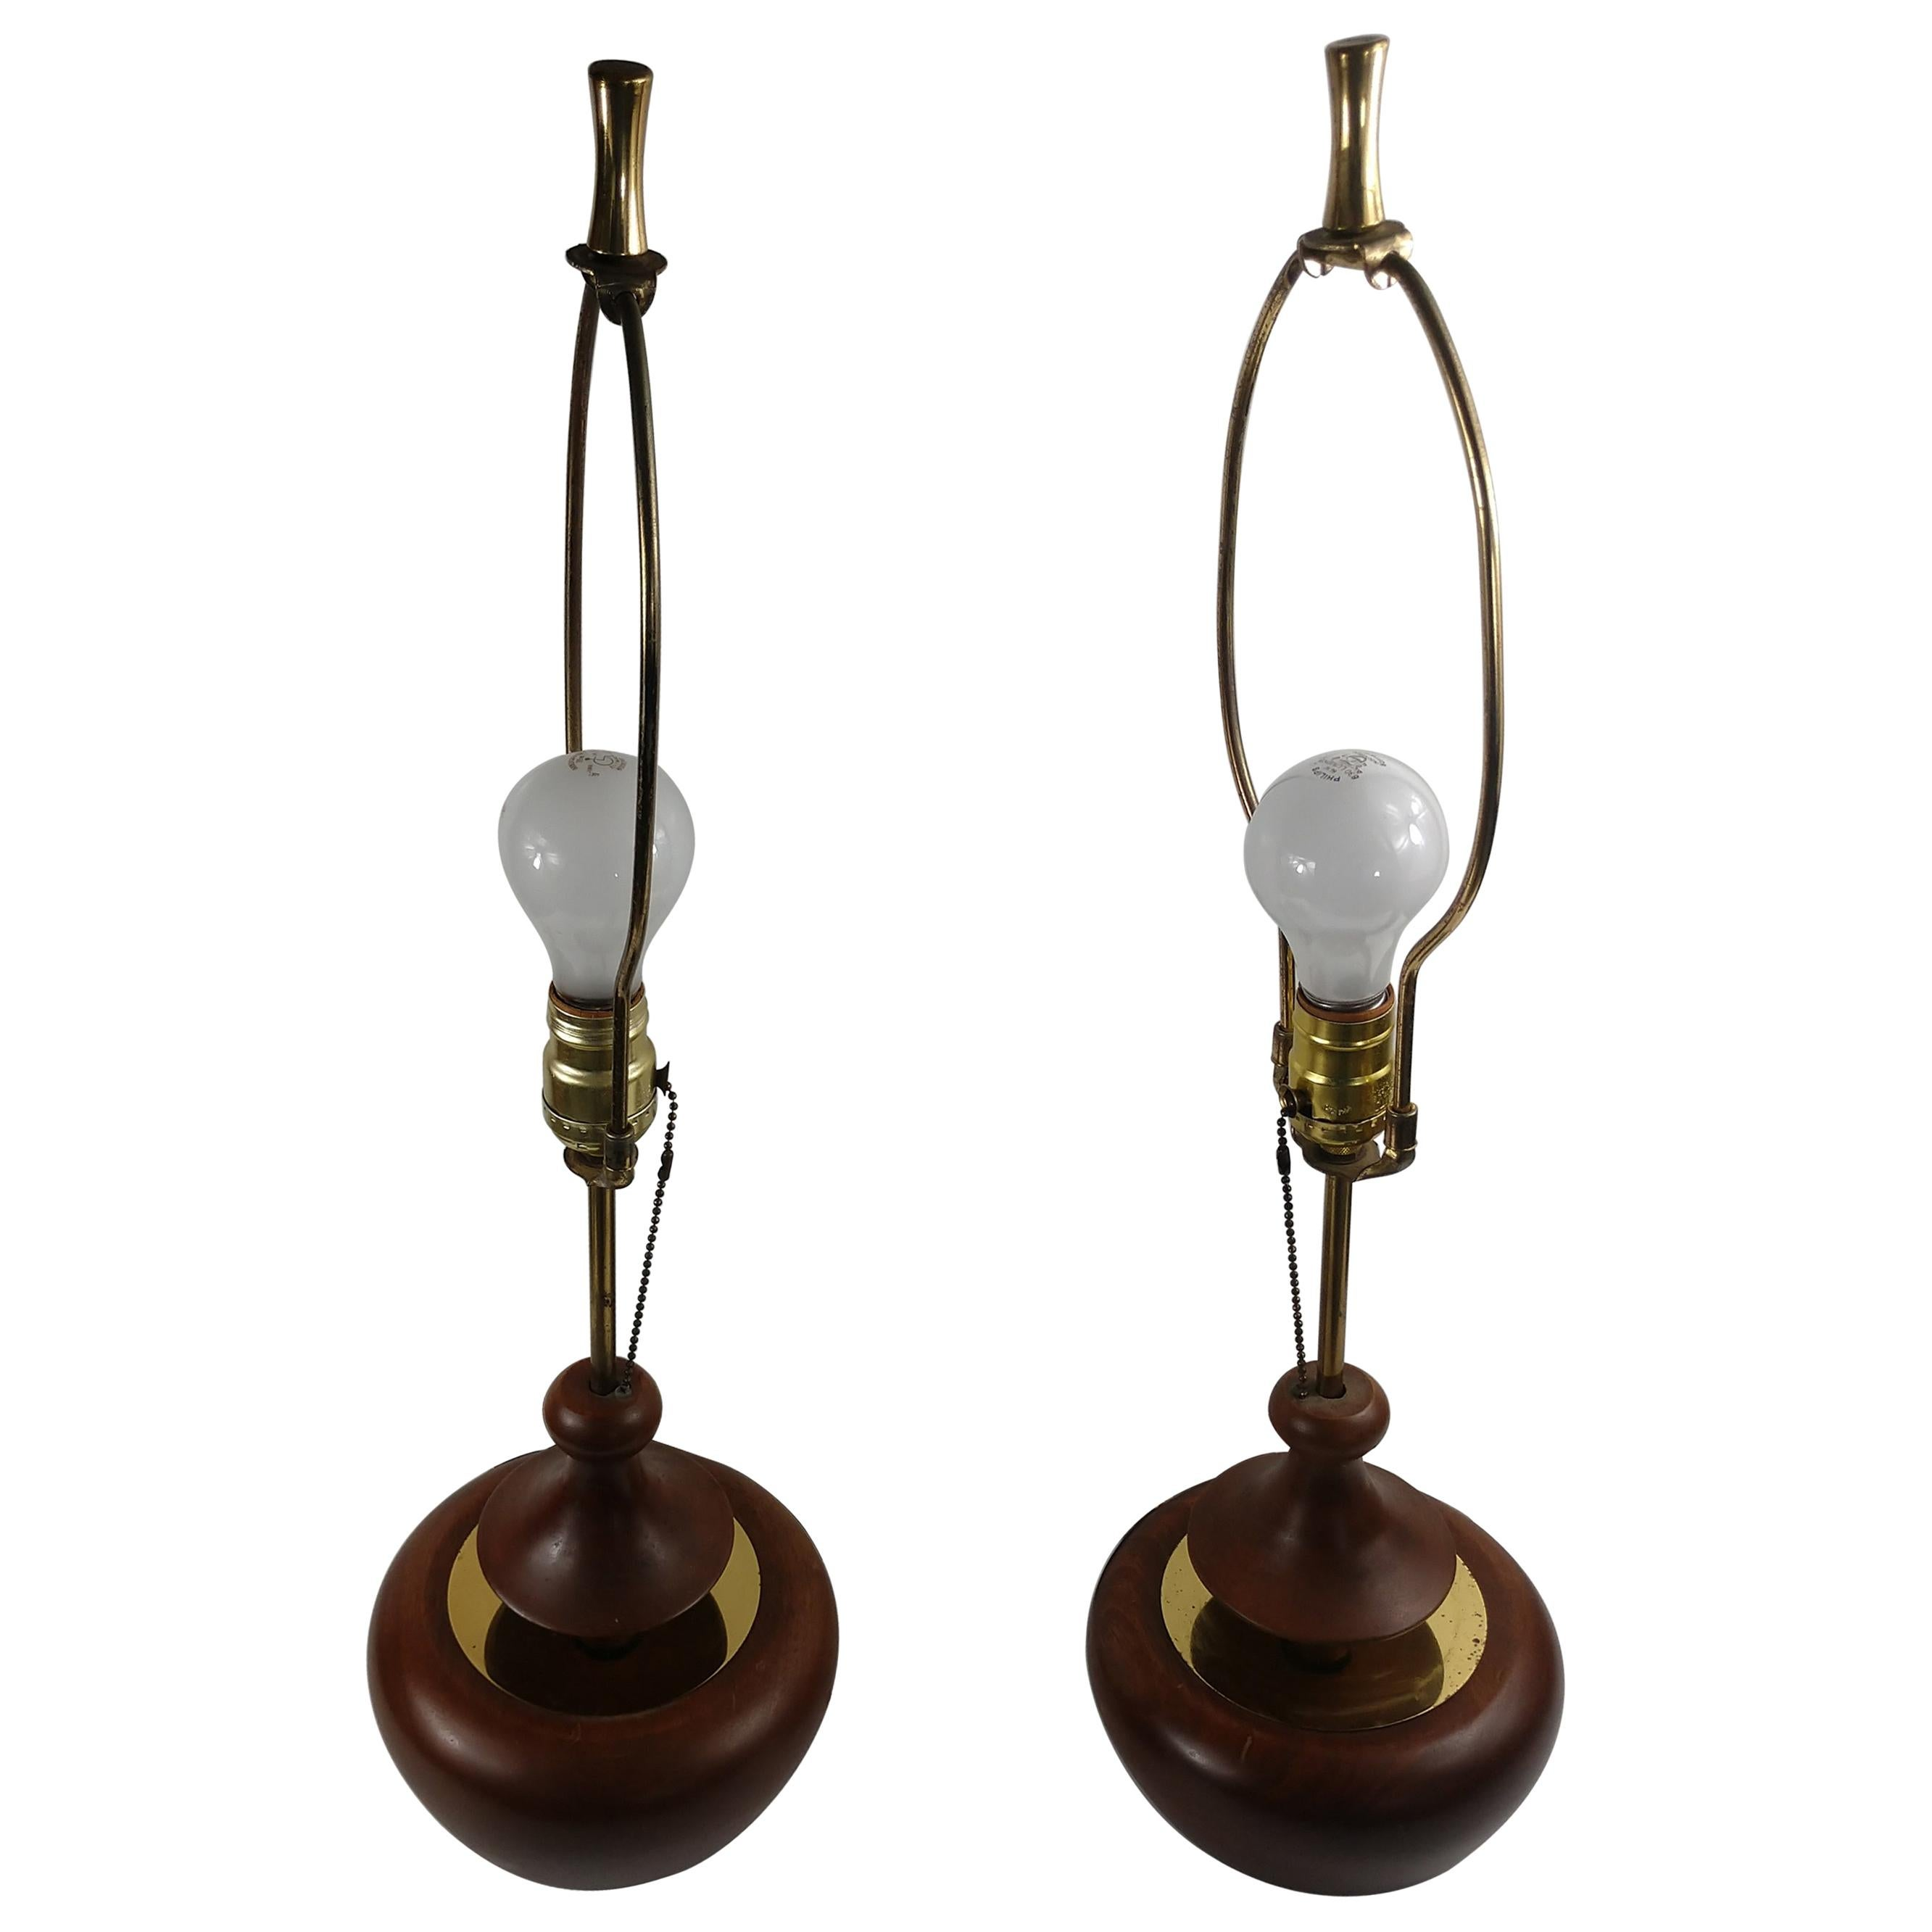 Pair of Mid-Century Modern Sculptural Danish Table Lamps